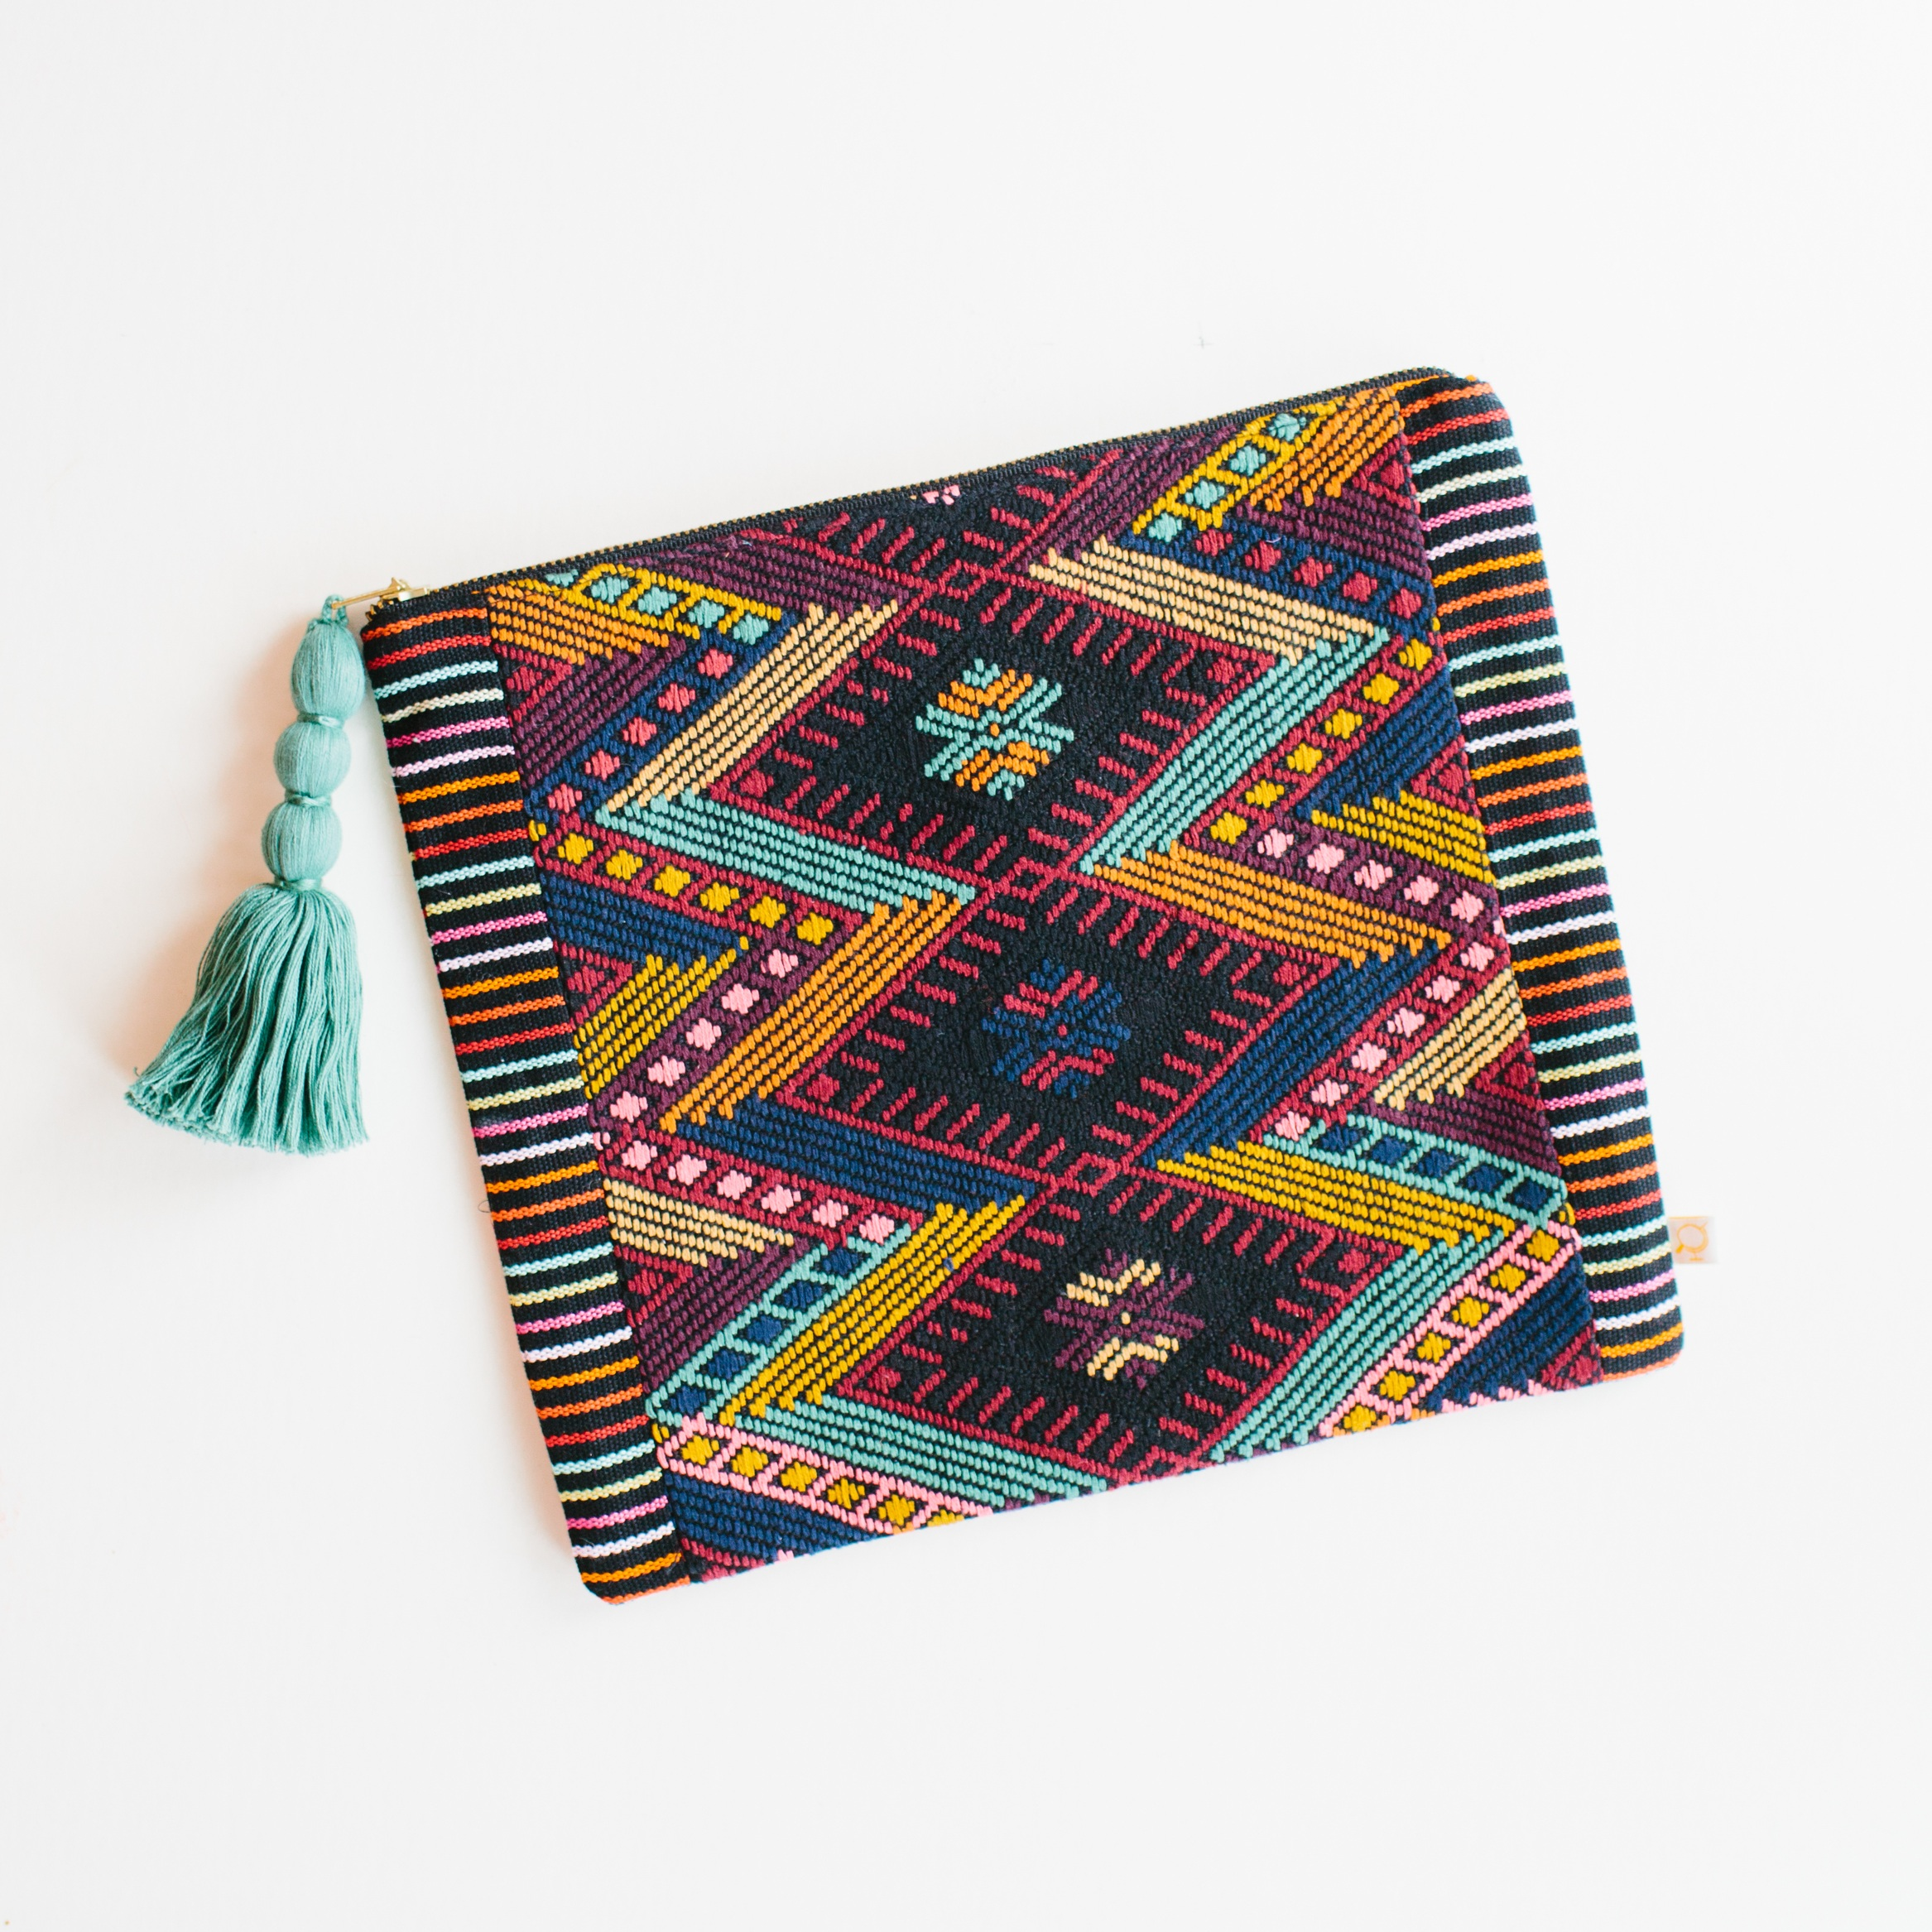 Chi-Chi Large Travel Pouch Clutch